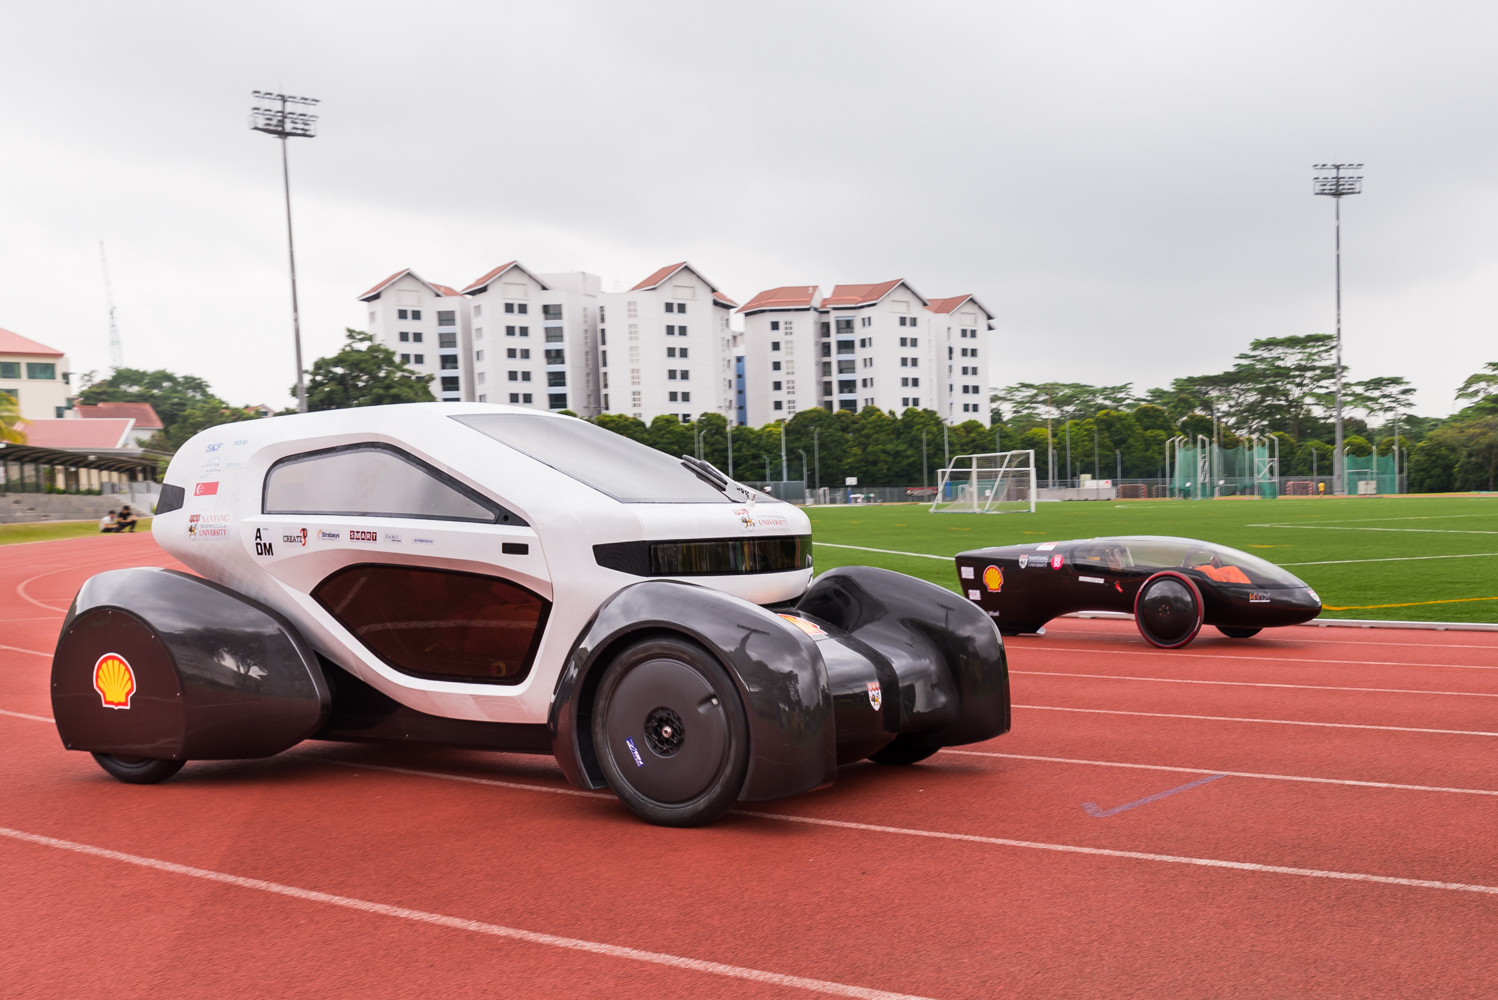 Singapore's first 3-D-printed concept car developed